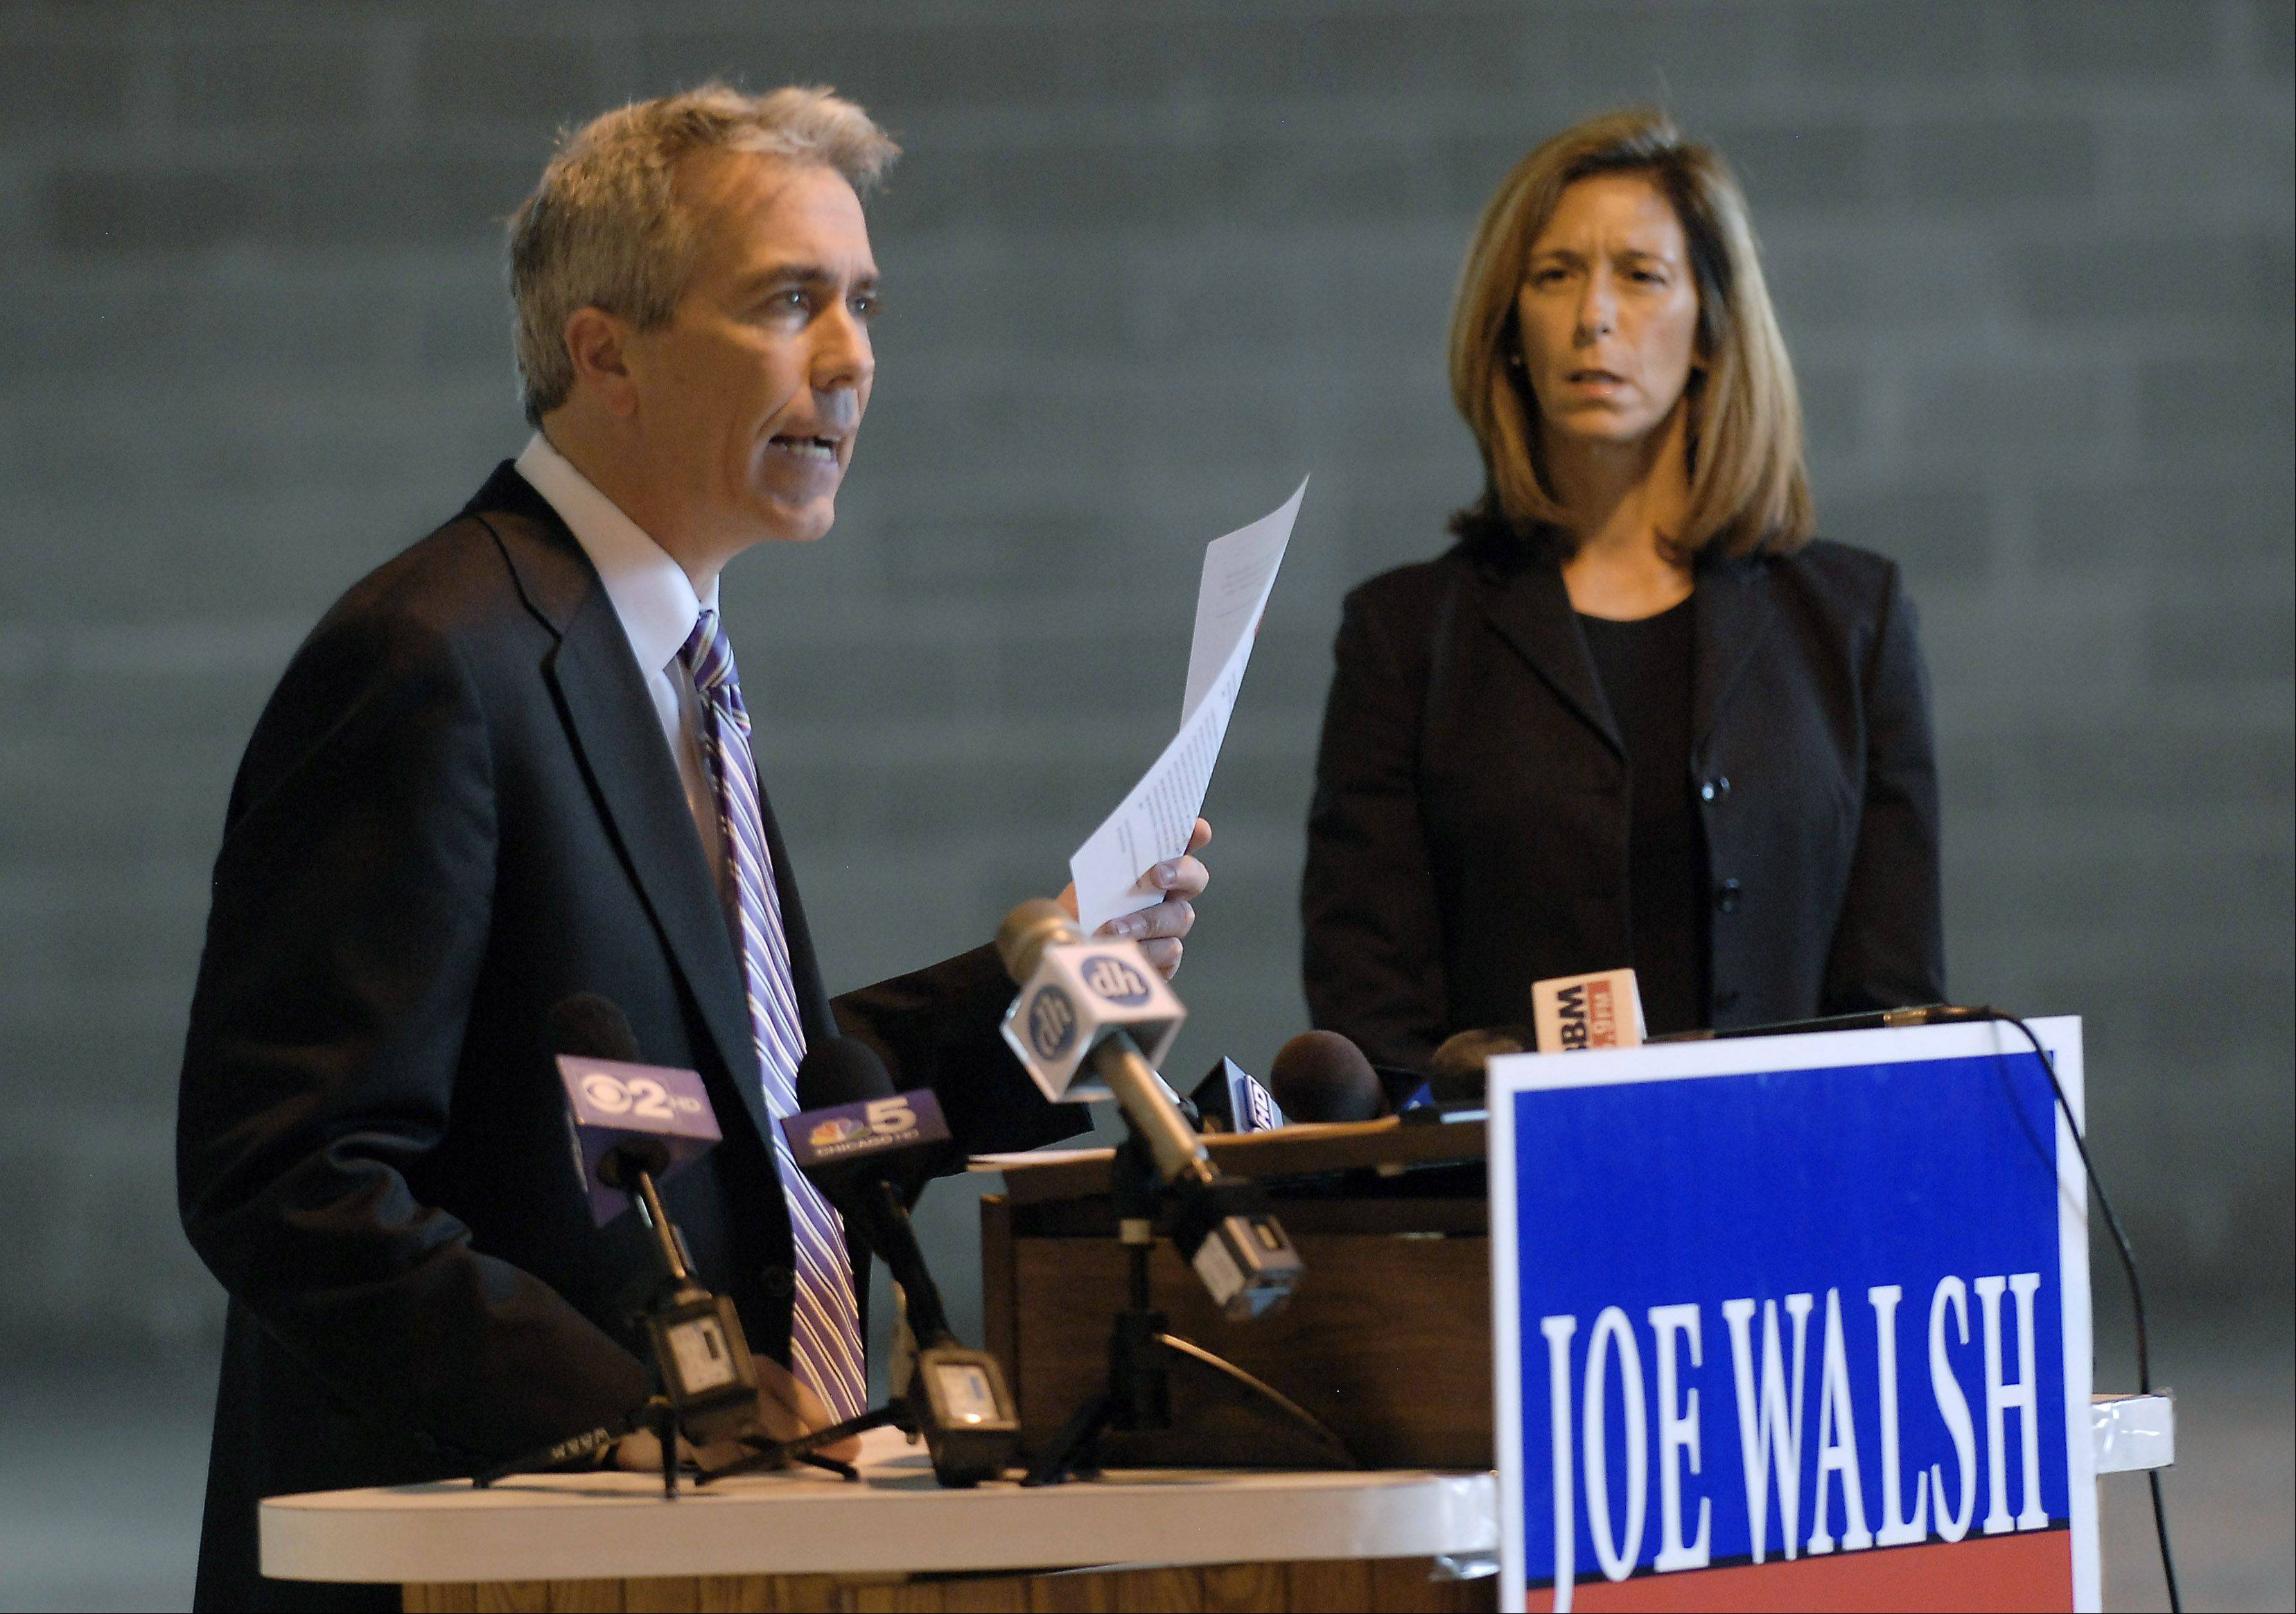 Congressman Joe Walsh reaffirms his pro-life stance without exception but notes some procedures may be medically necessary to save the life of the mother. His wife Helene Walsh looks on.